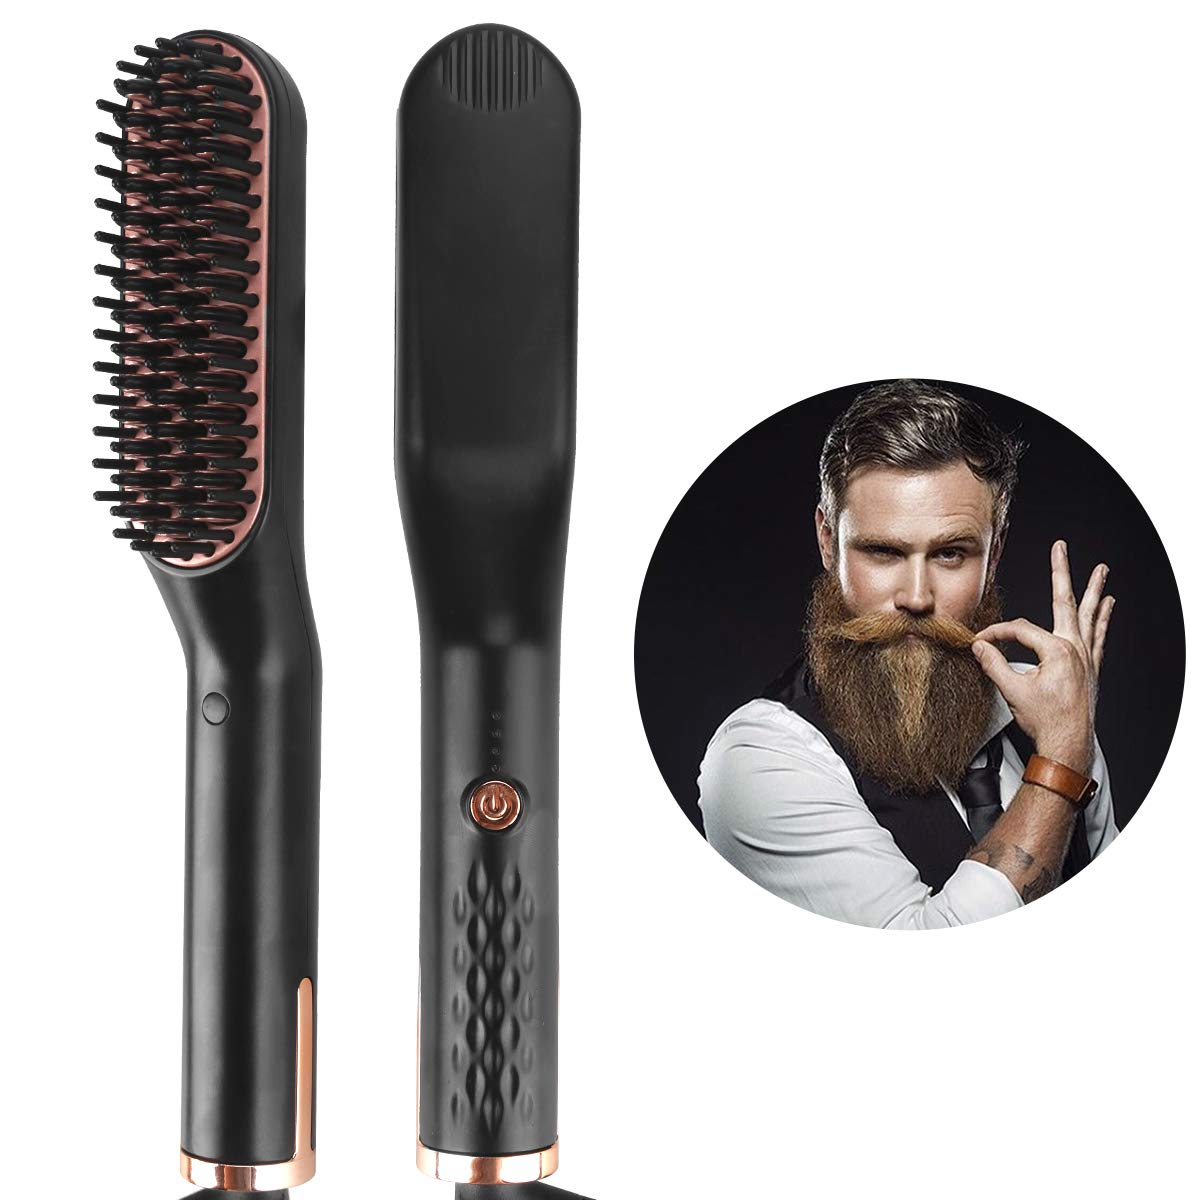 Beard Straightener Brush For Man, Ionic Enhanced Hair Straightening Brush For Women Faster Heating and for All Hair Types,Auto Temperature Lock,Hot Comb with Anti-Scald Feature